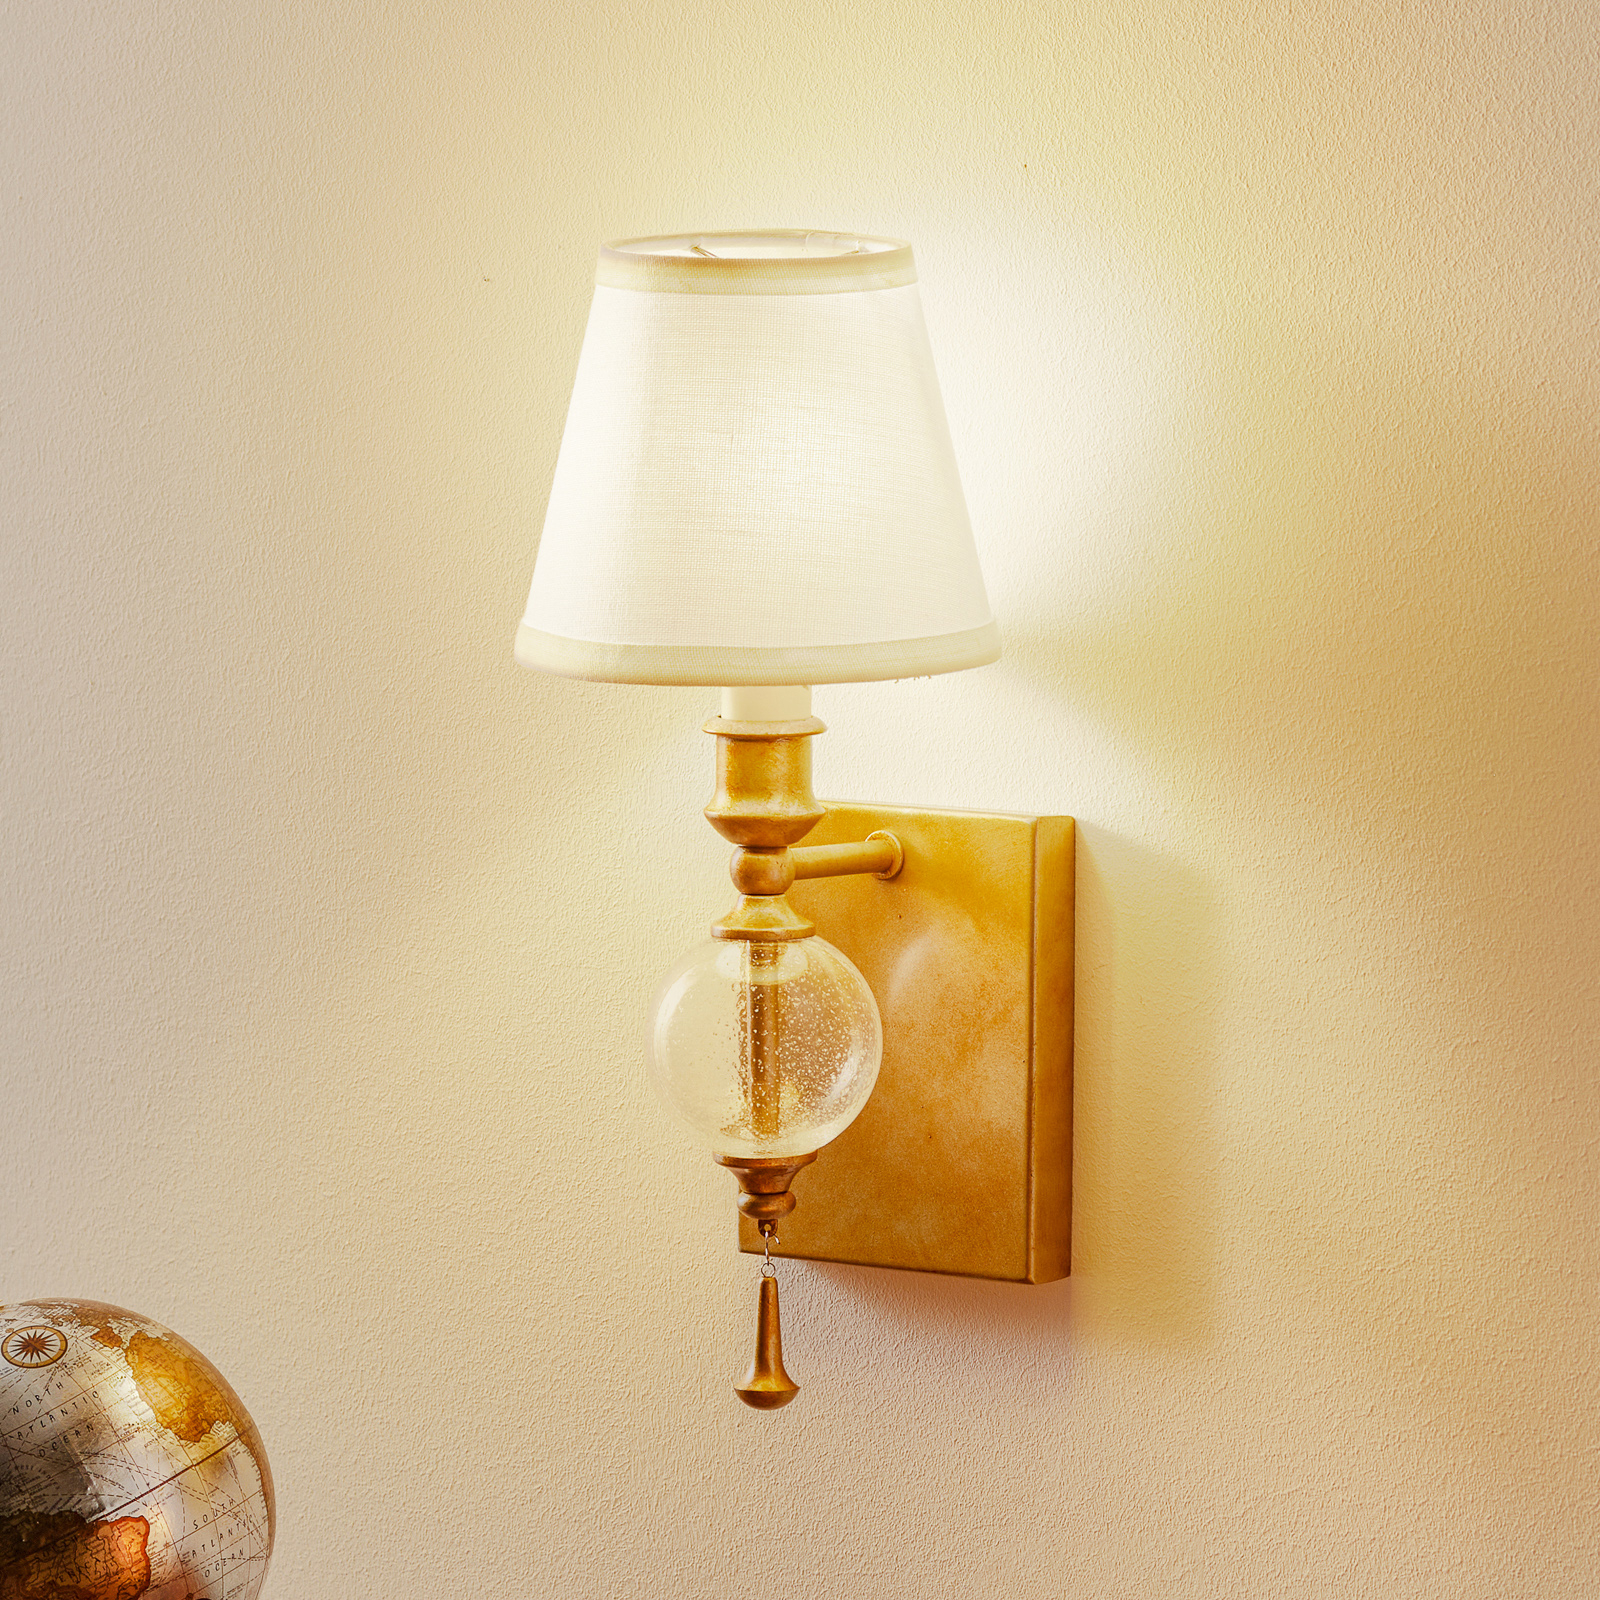 Argento Wall Light for Beautiful Light_3048242_1